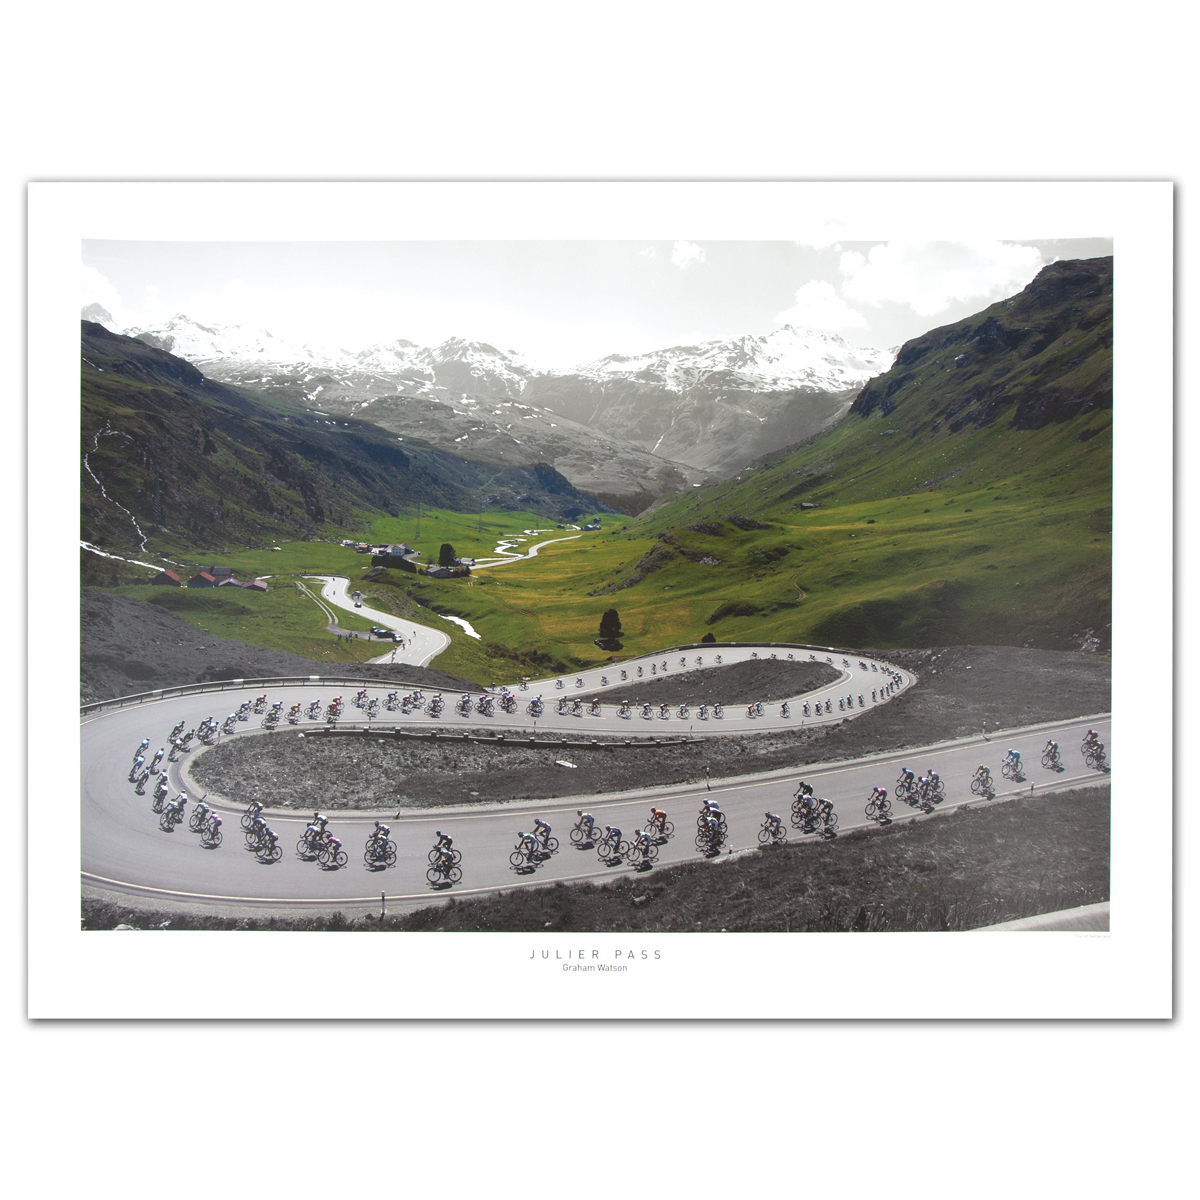 2013 Tour de Suisse - Julier Pass Poster